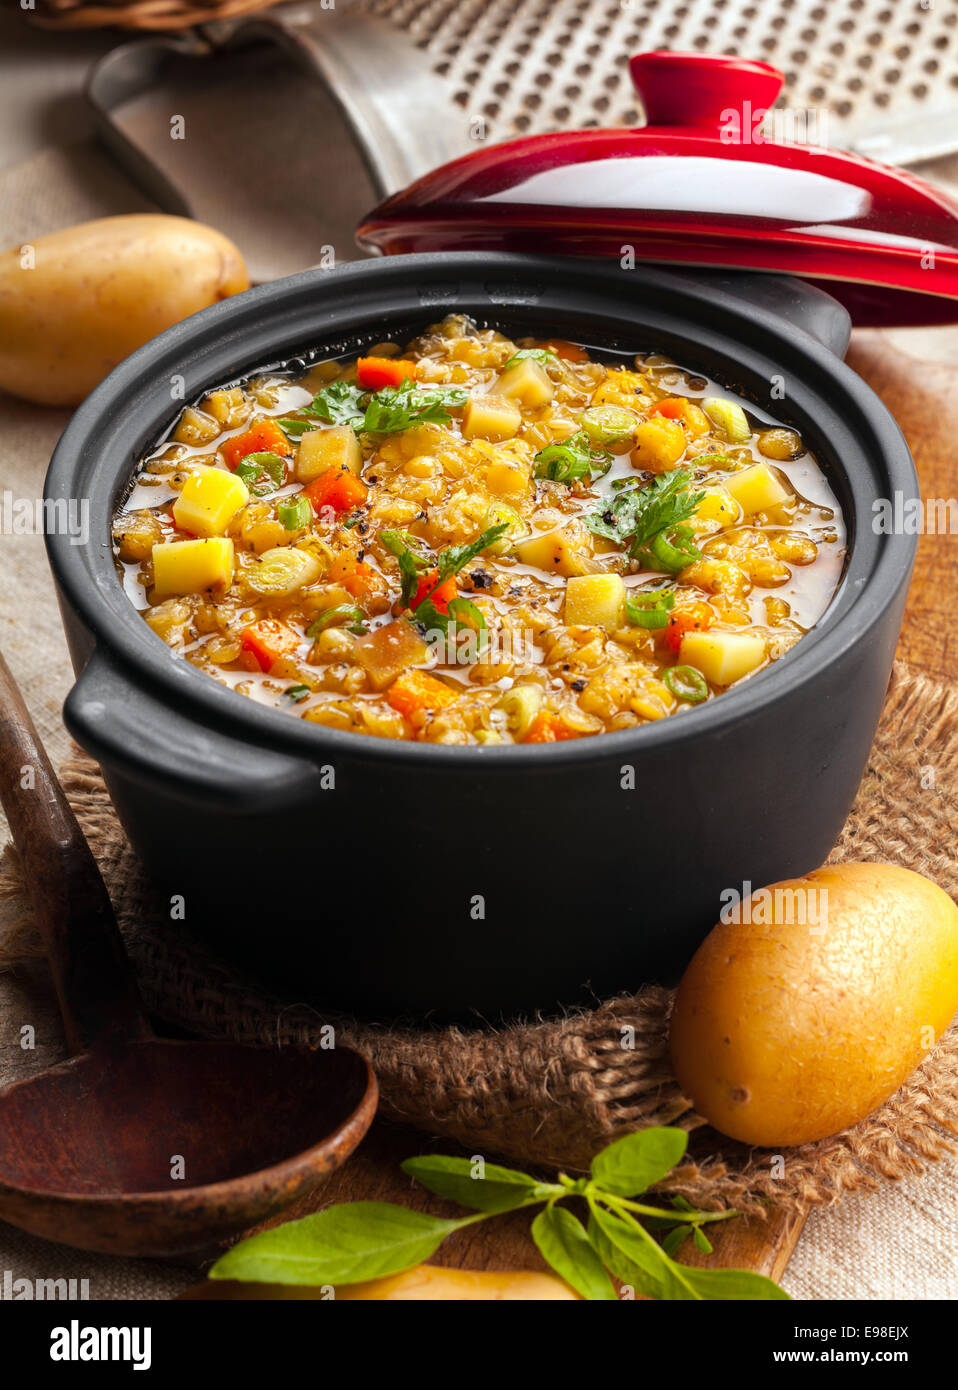 Delicious lentil and vegetable stew in a rustic kitchen in an open crock, high angle view Stock Photo